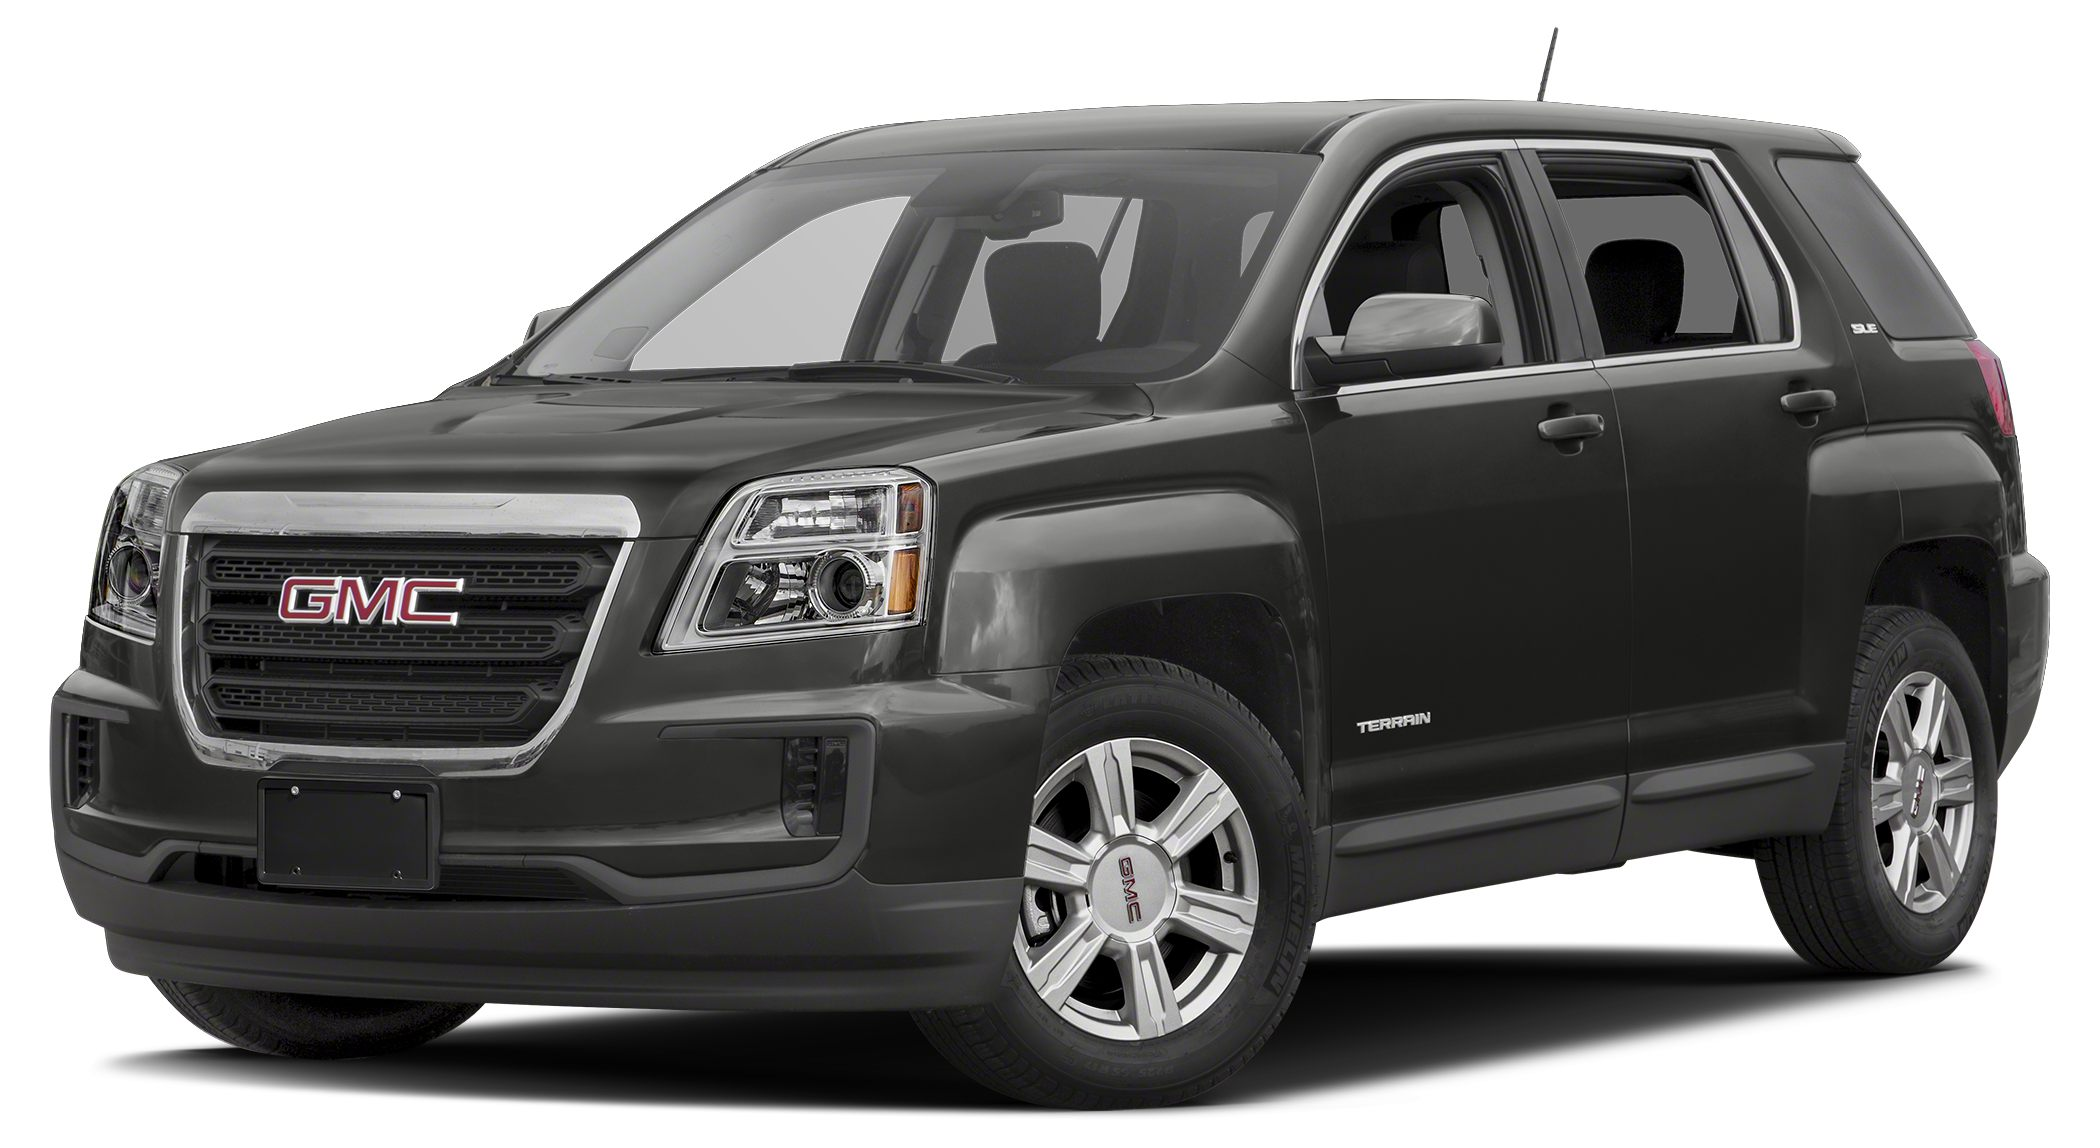 2016 GMC Terrain SLE-1 IRIDIUM METALLIC exterior and JET BLACK interior SLE trim FUEL EFFICIENT